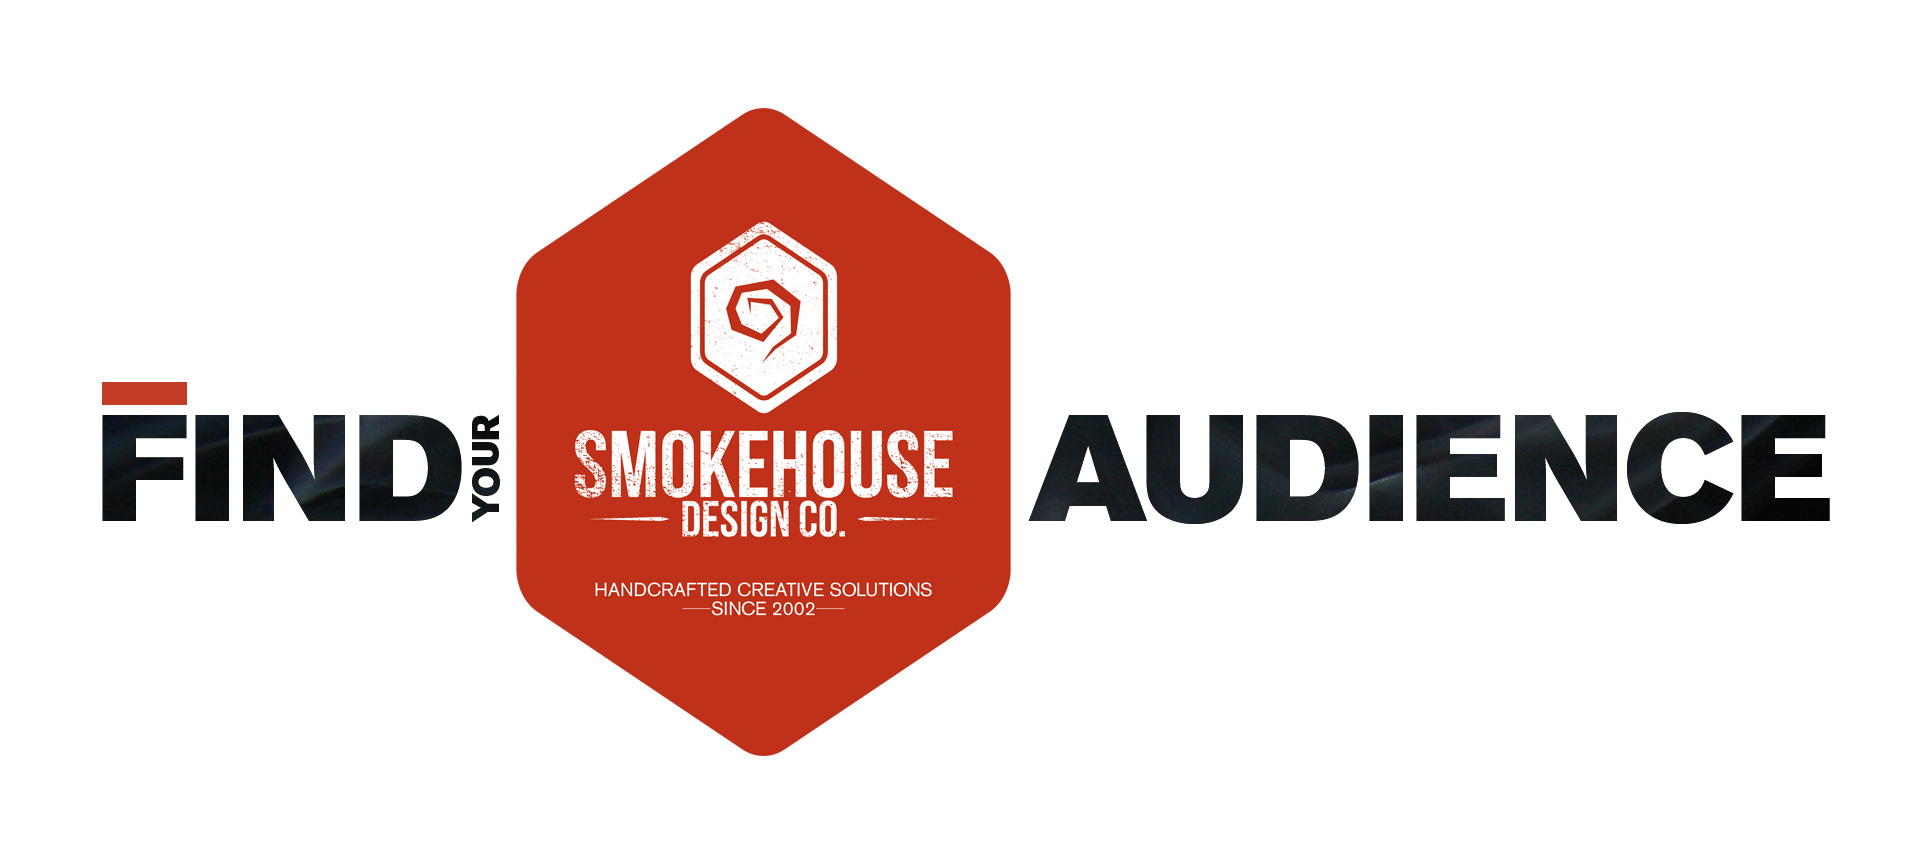 Find your audience with Smokehouse Design Co.